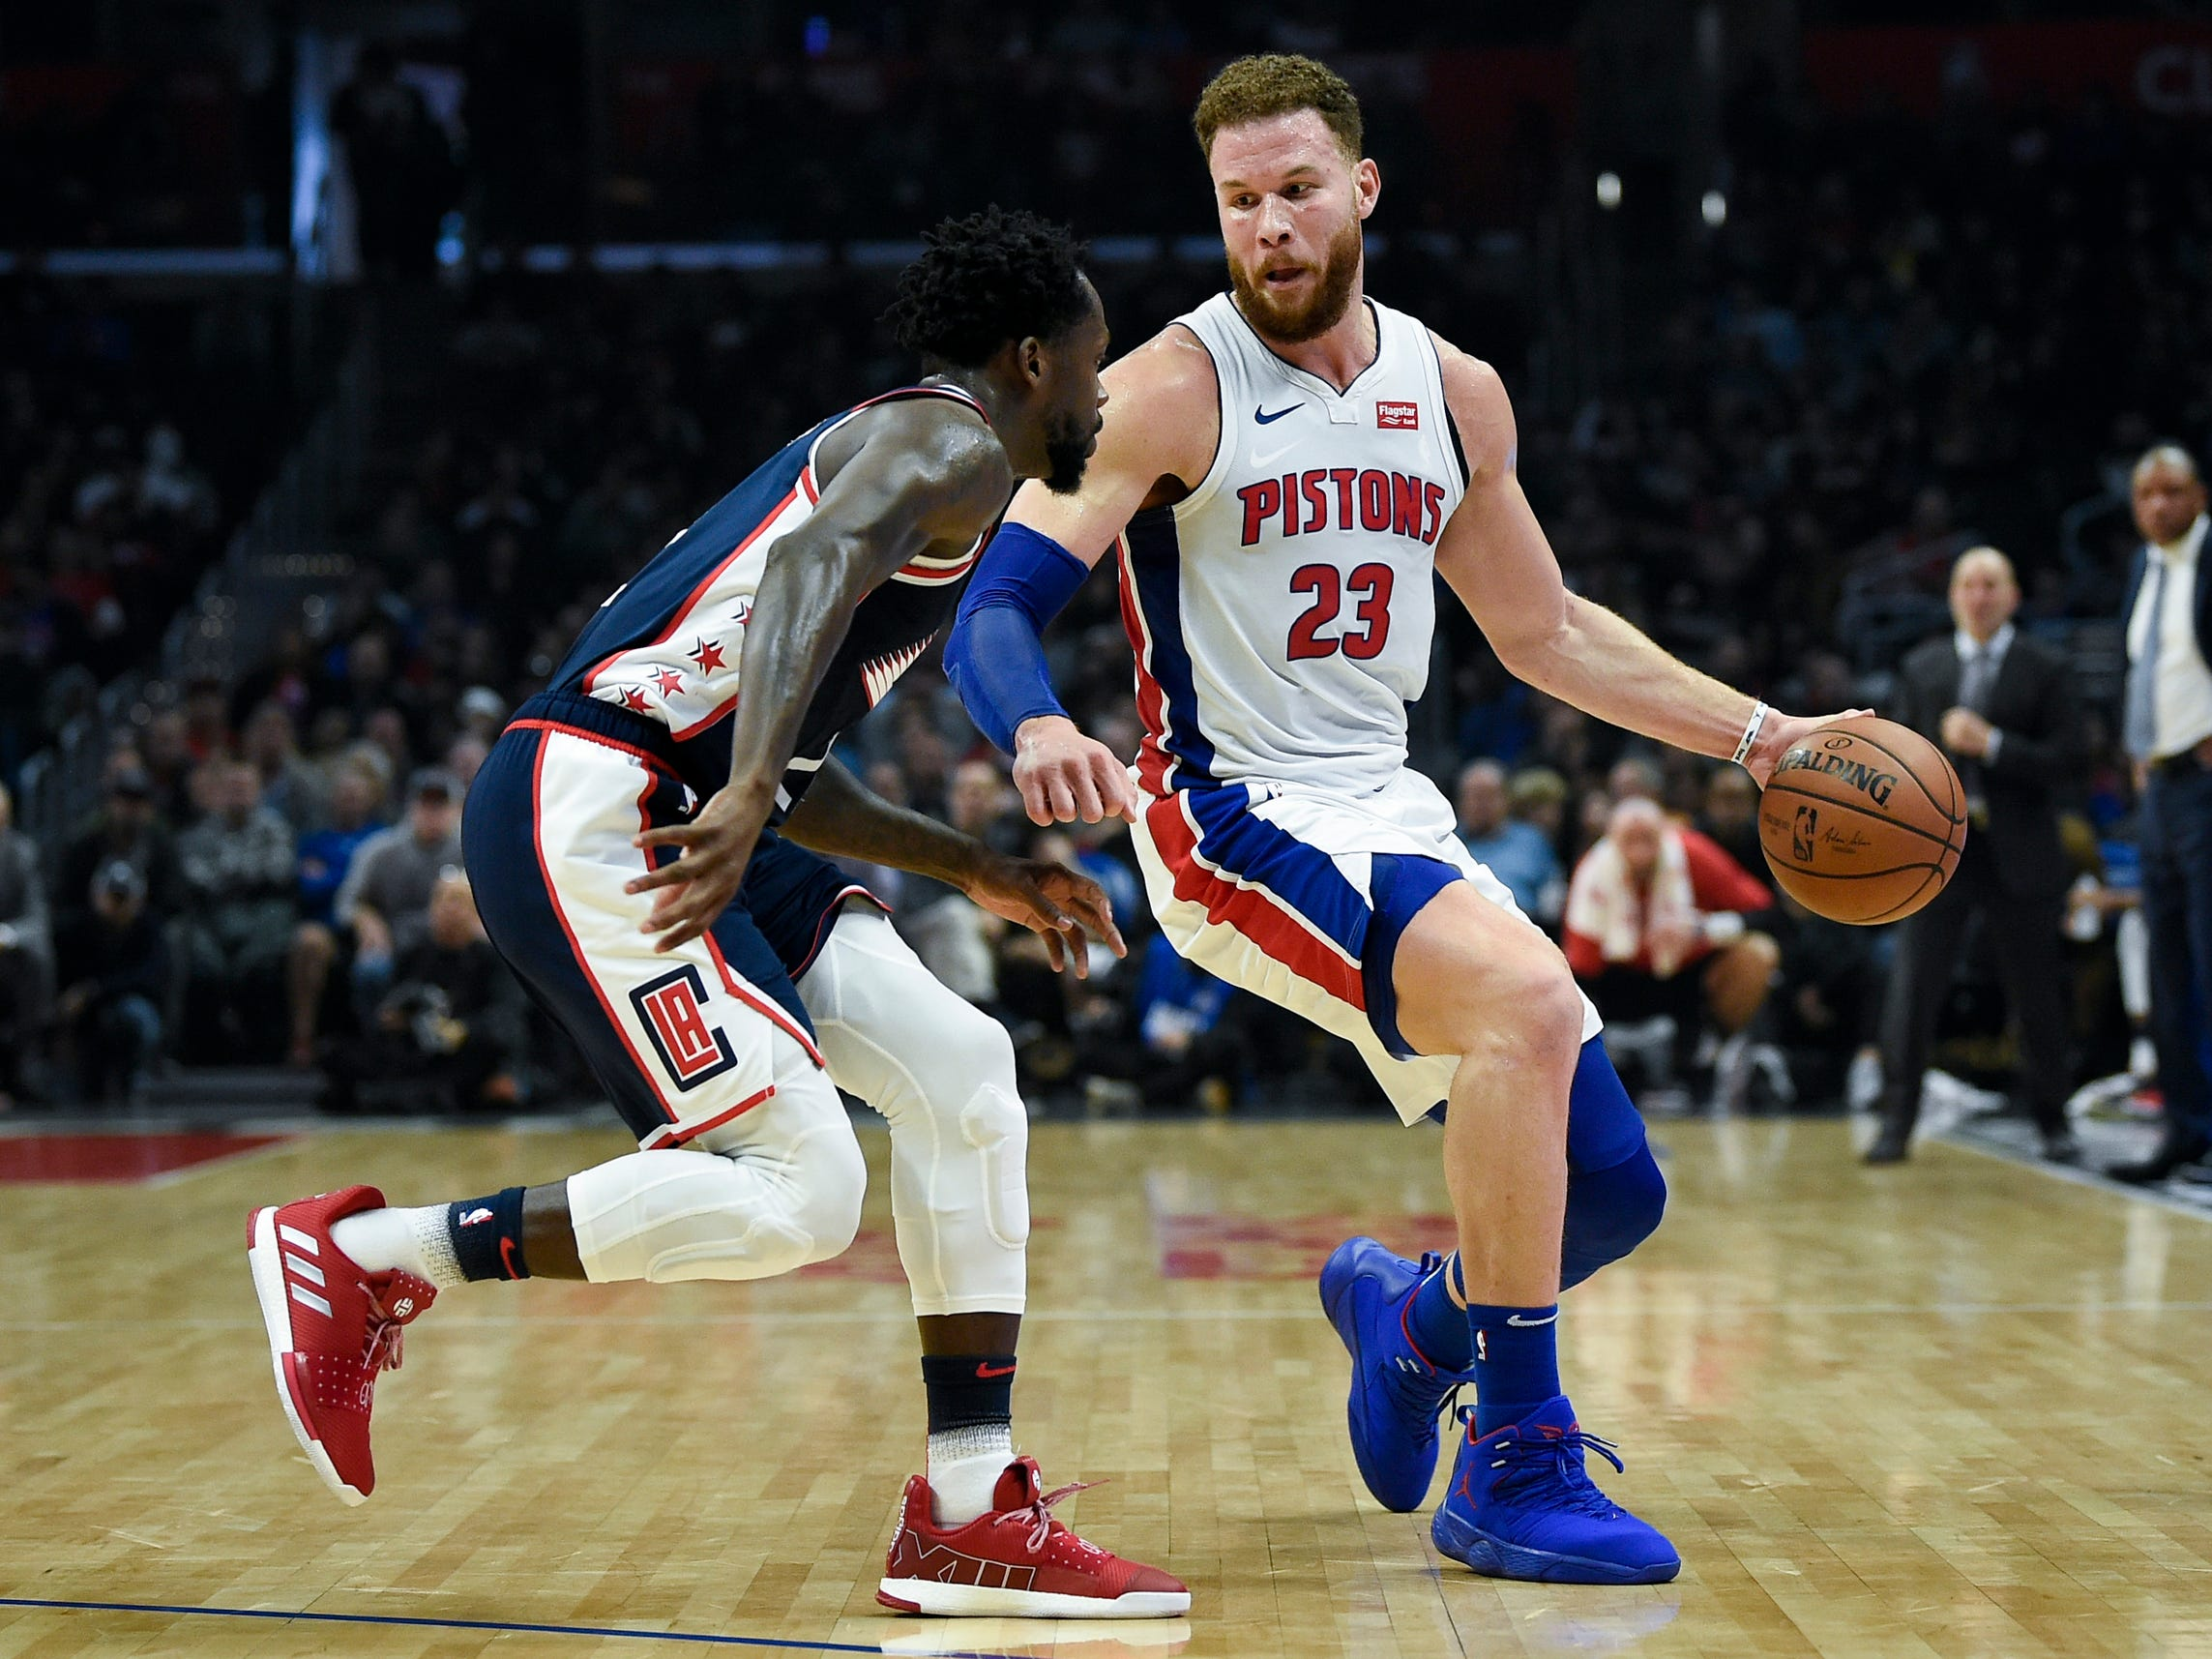 Pistons forward Blake Griffin handles the ball while Clippers guard Patrick Beverley defends during the first half on Jan. 12, 2019, in Los Angeles.